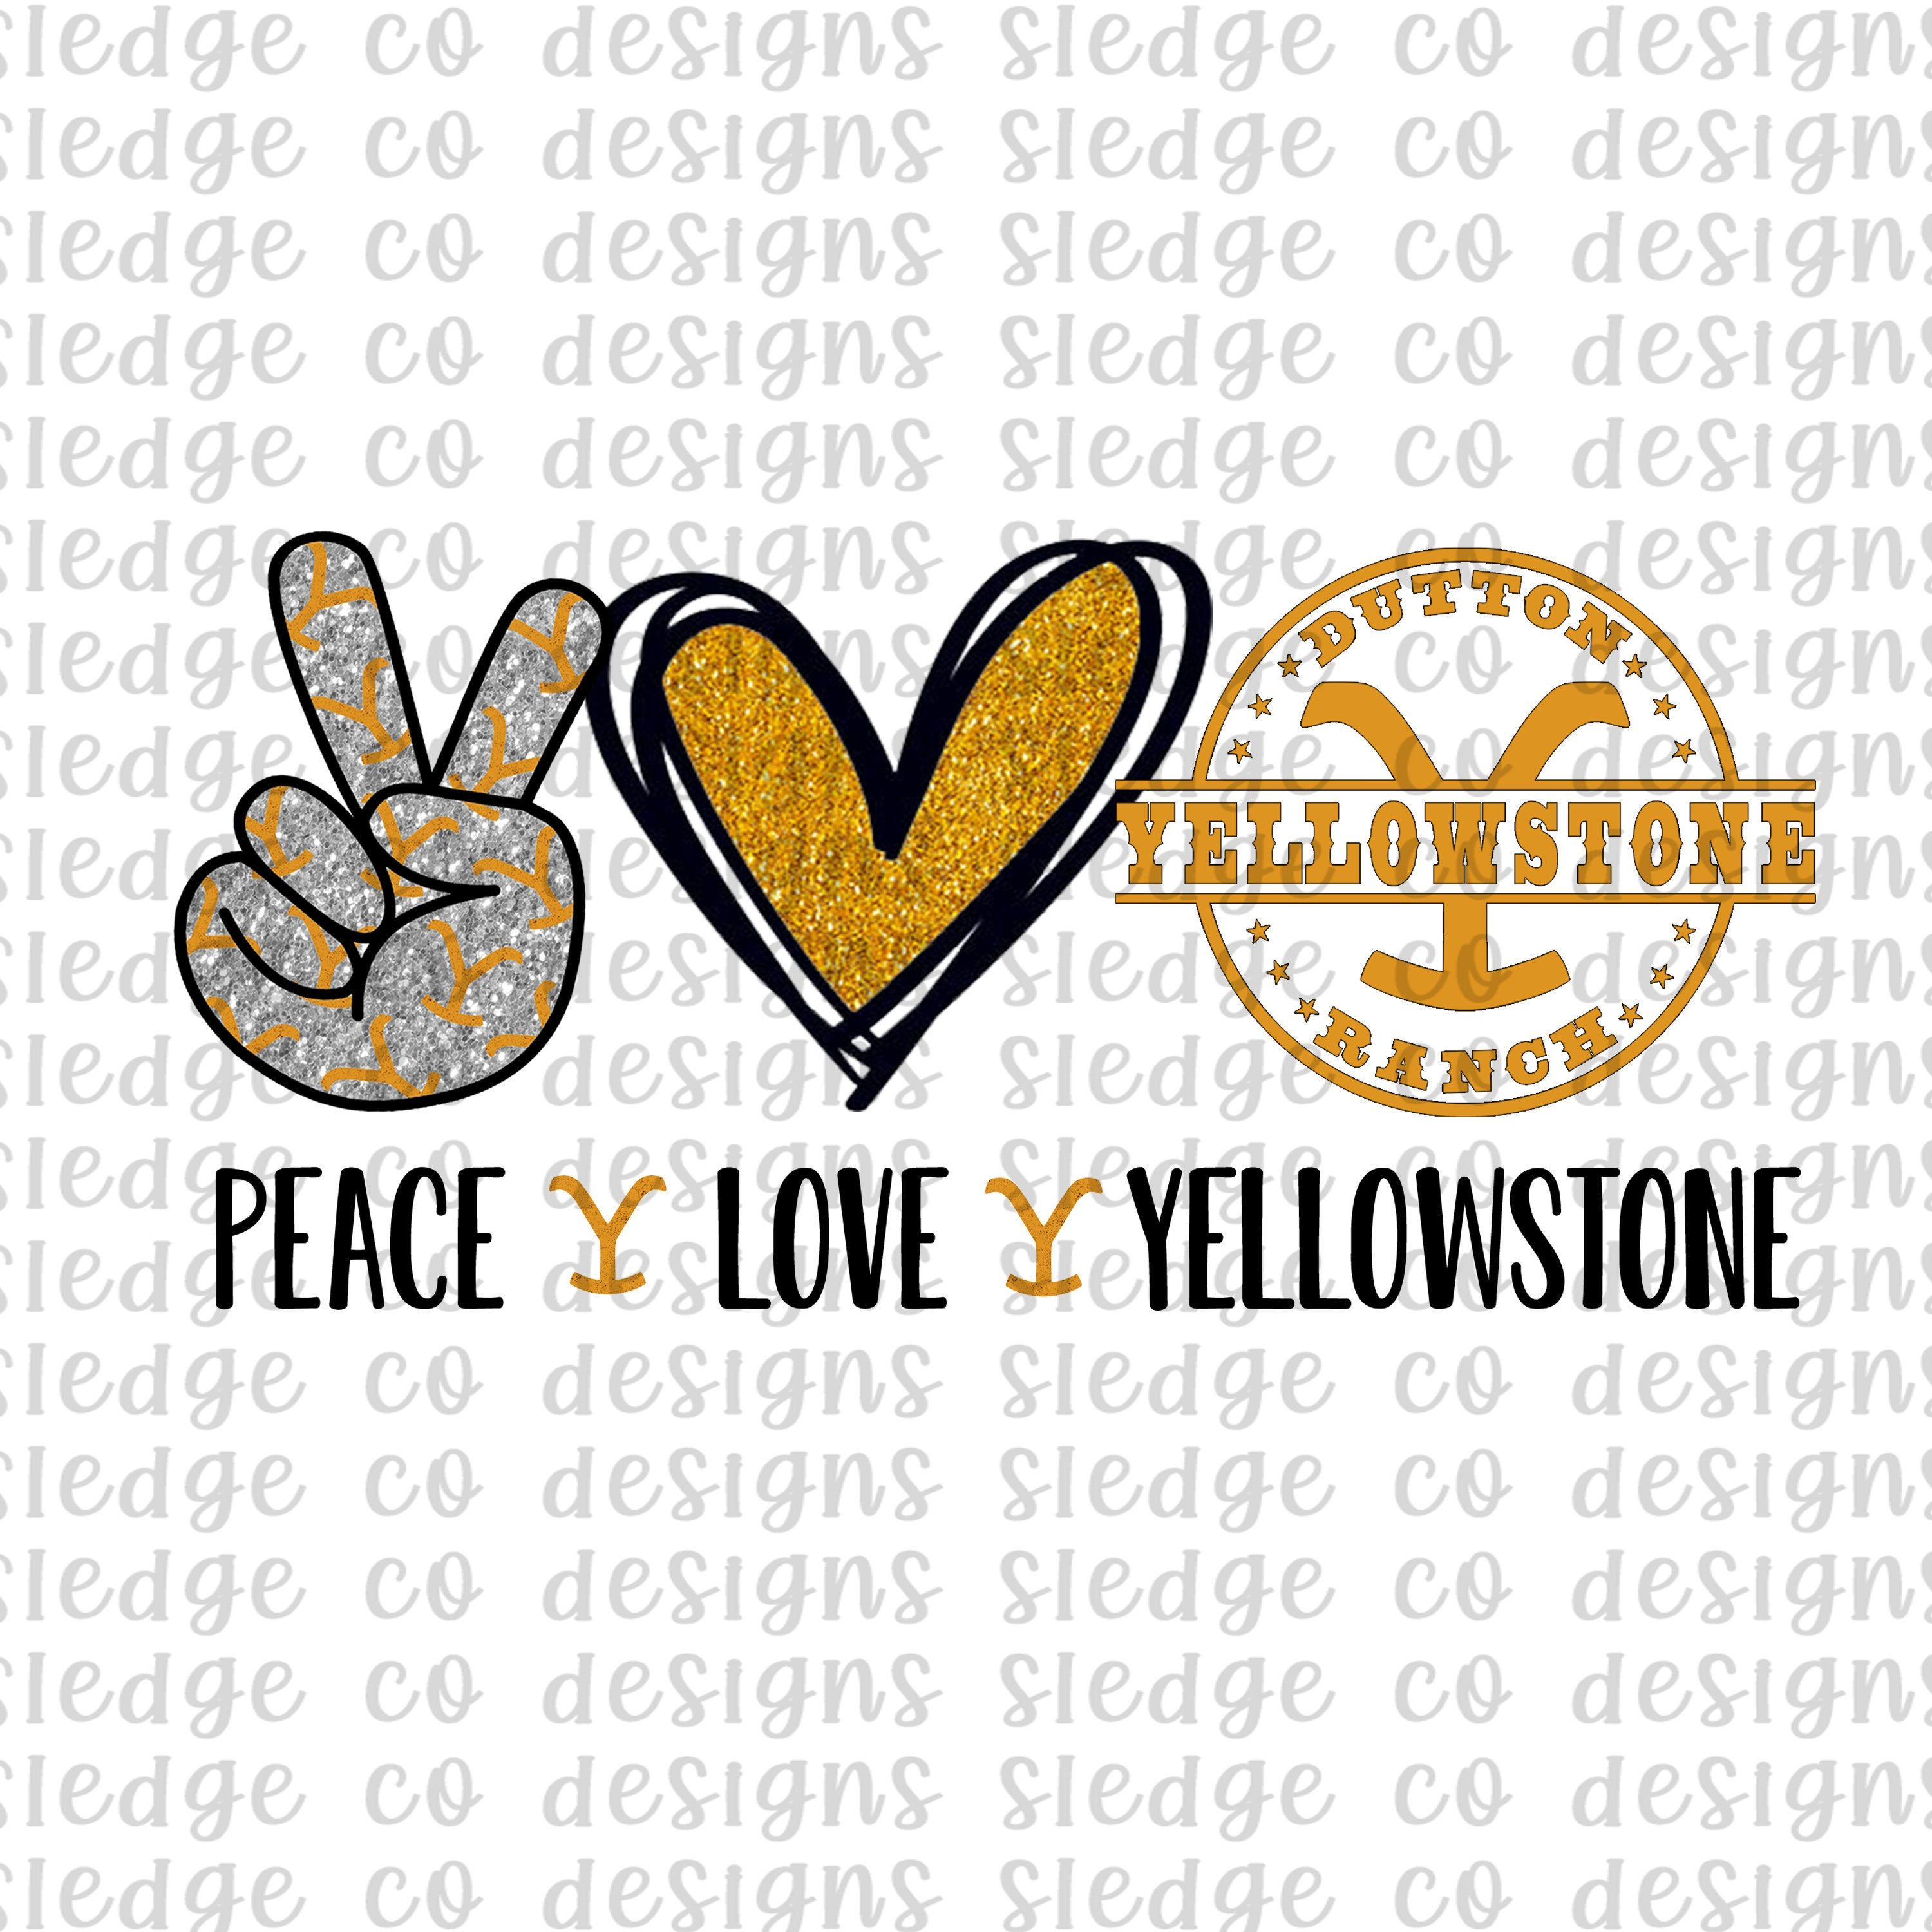 Peace Love Yellowstone sublimation design download, dutton